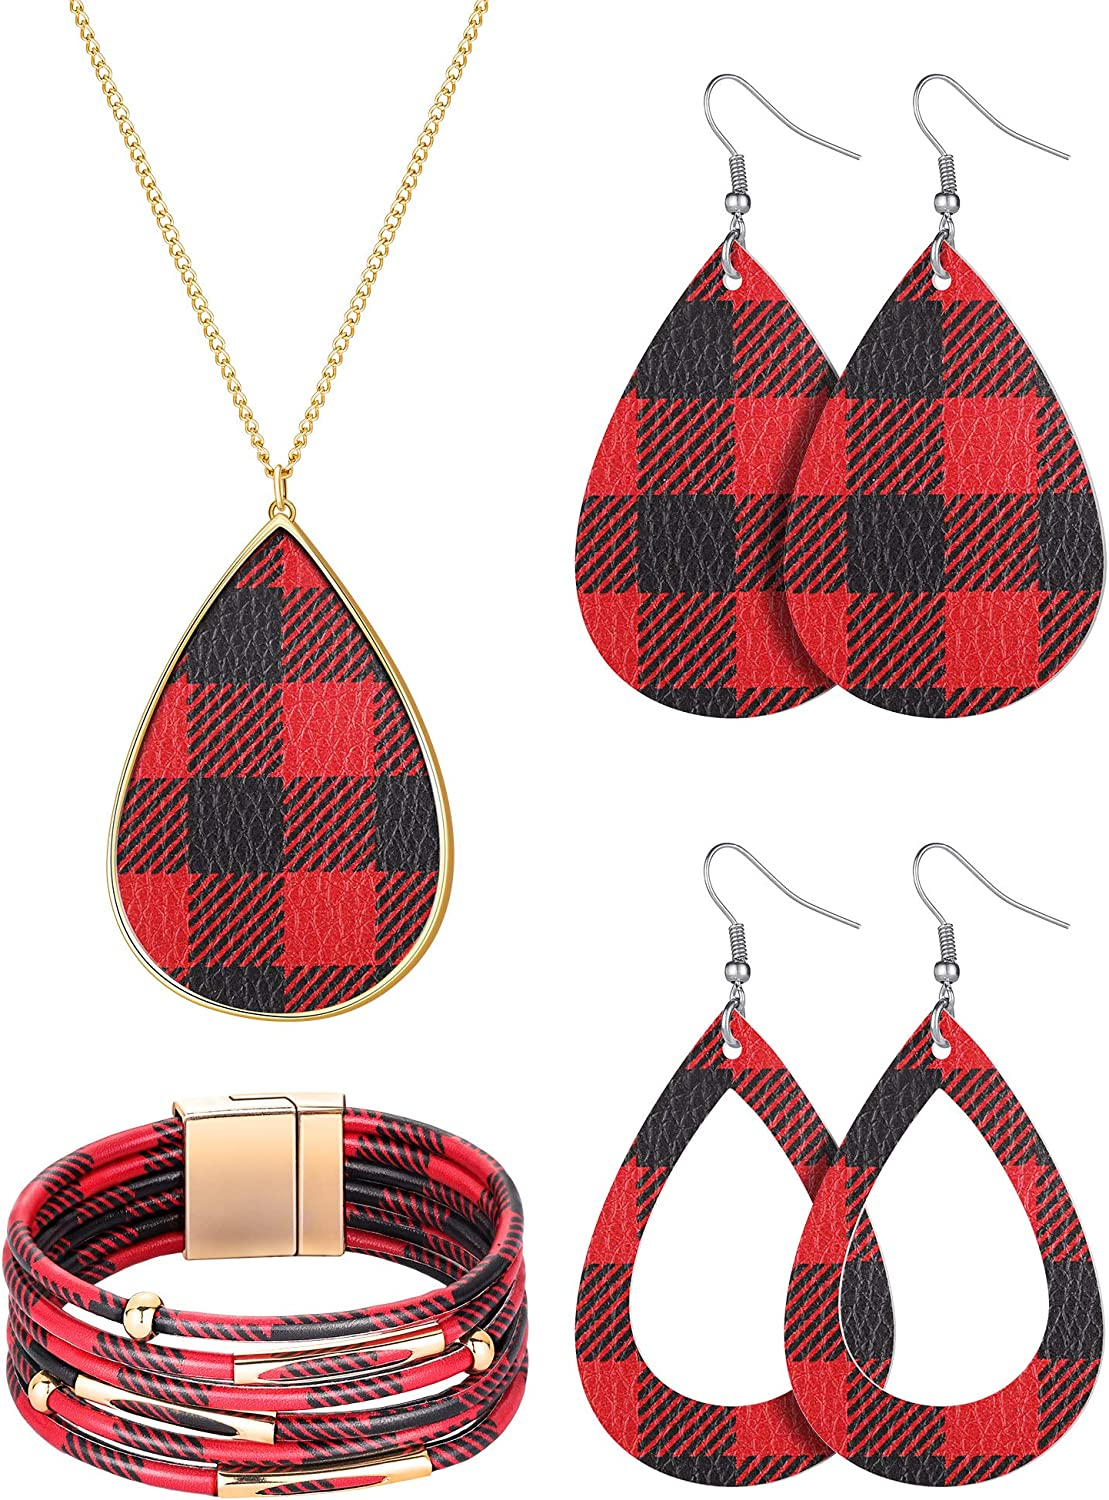 4 Pieces Christmas Plaid Print Jewelry Set Multi-Layer Bracelet Xmas Check Teardrop Earrings Necklaces Faux Leather Plaid Dangle Earring Necklace Lightweight Gifts for Women Girls